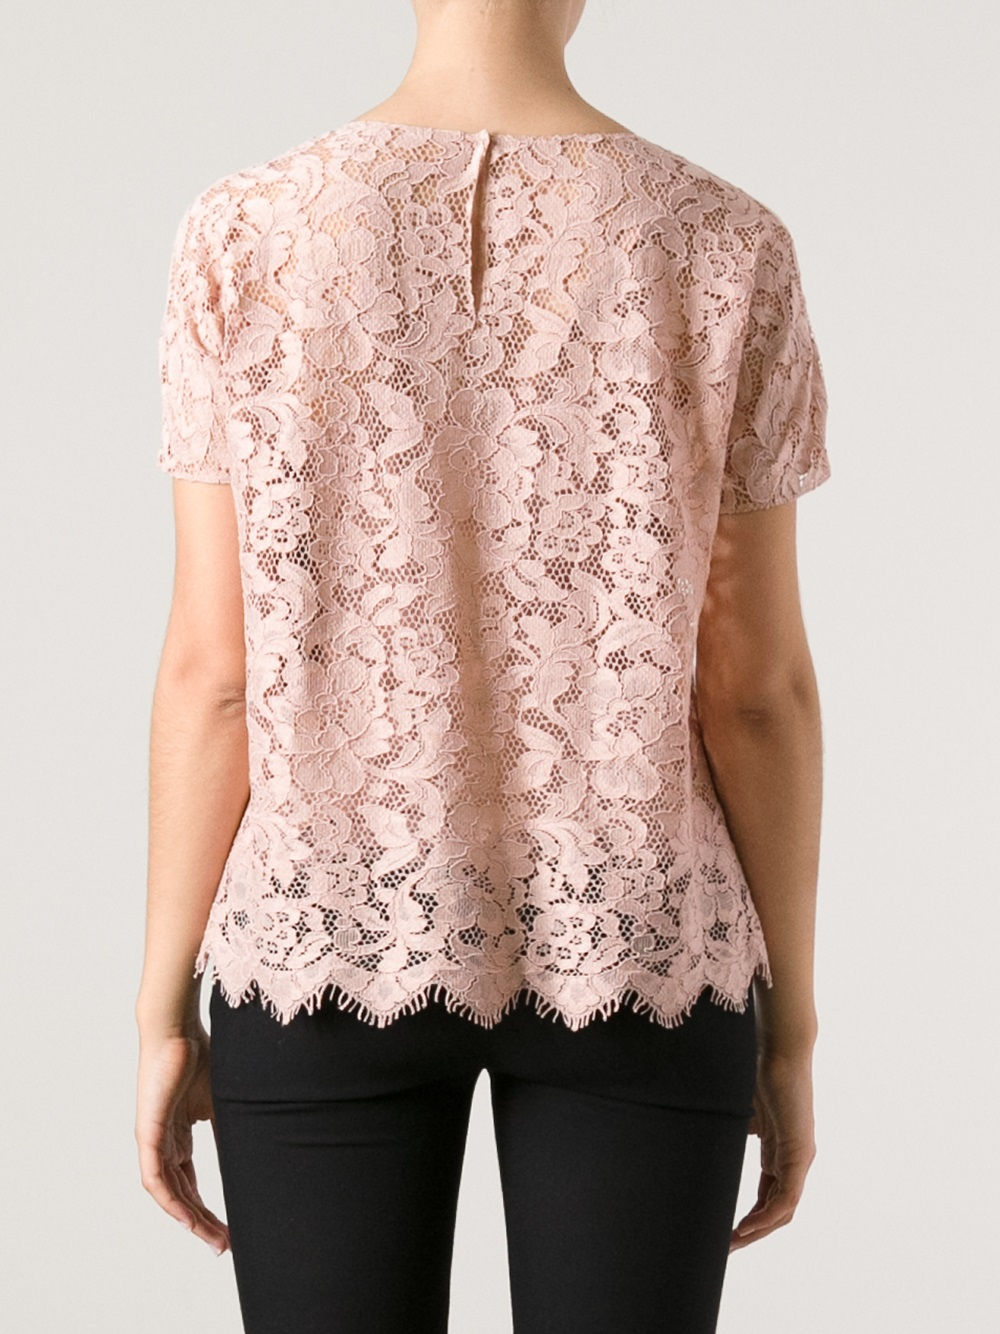 Lyst - Dolce & Gabbana Lace Top in Pink